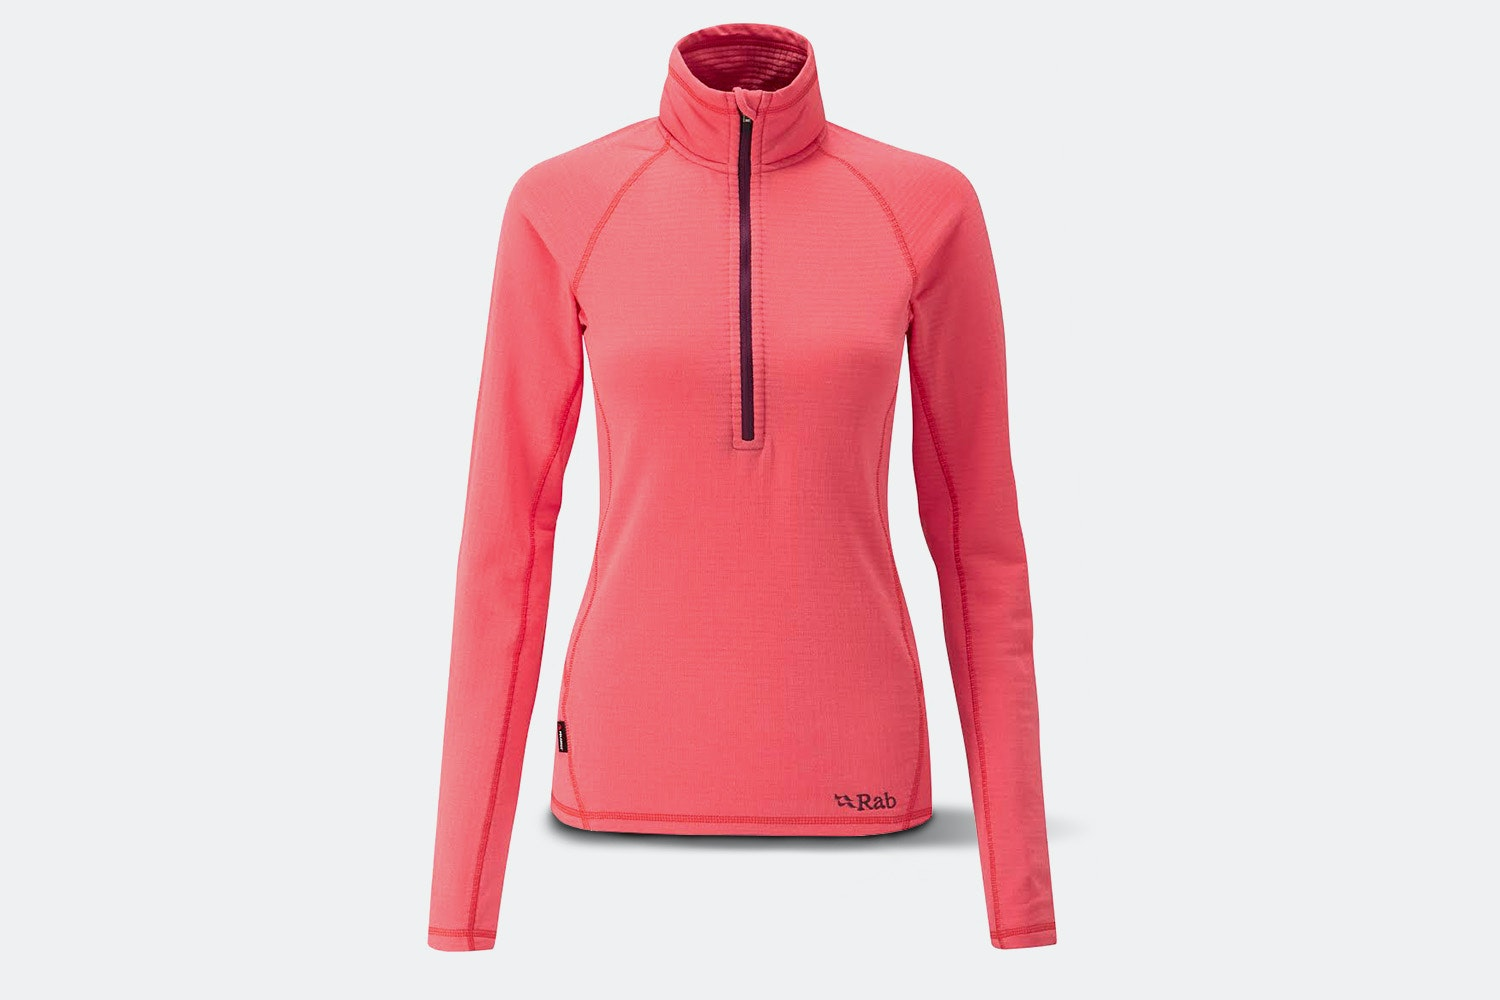 Women's – Coral